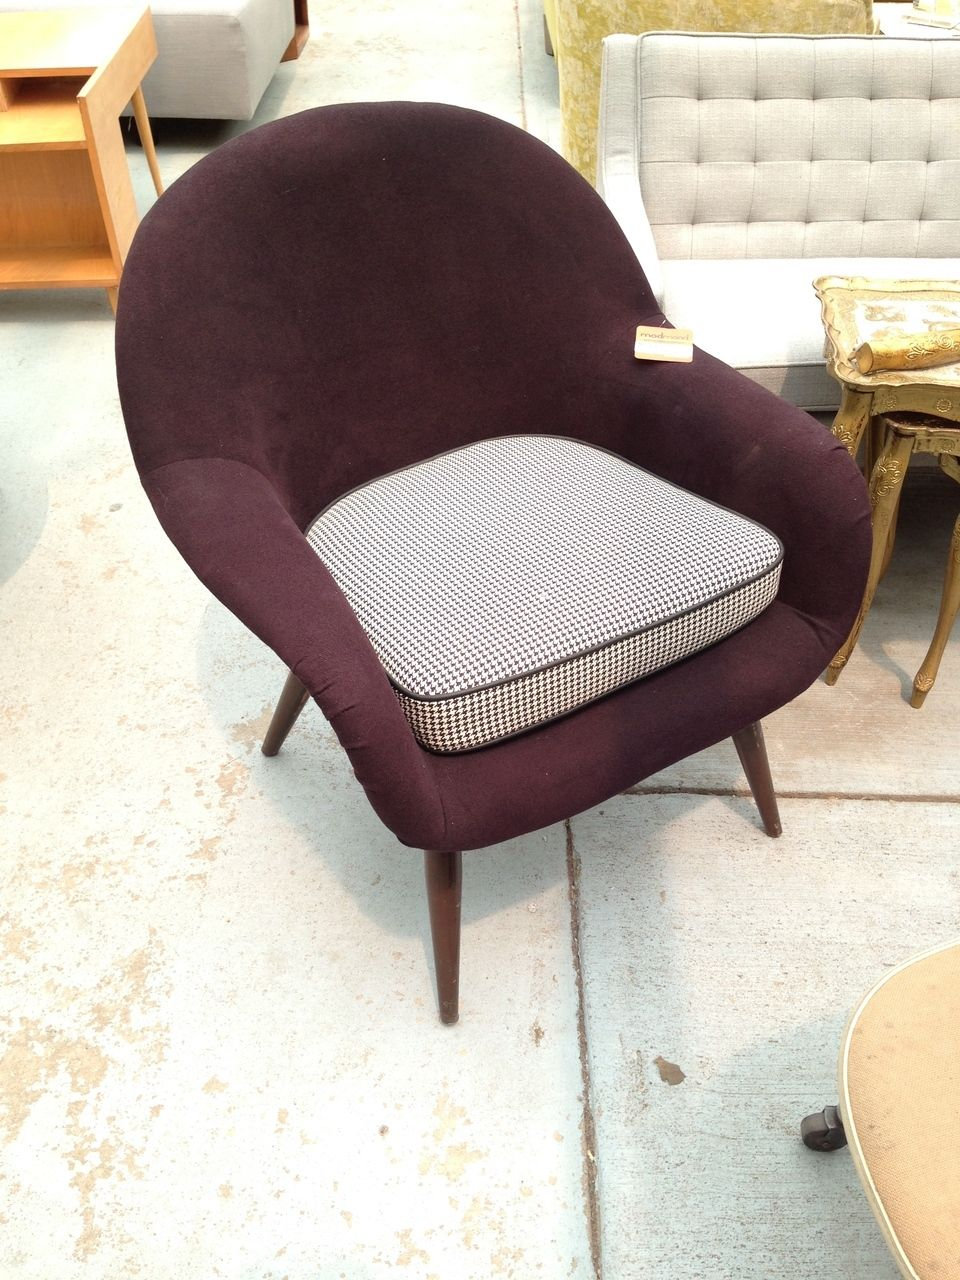 Best Mid Century Modern Black And White Chairs With Images 400 x 300